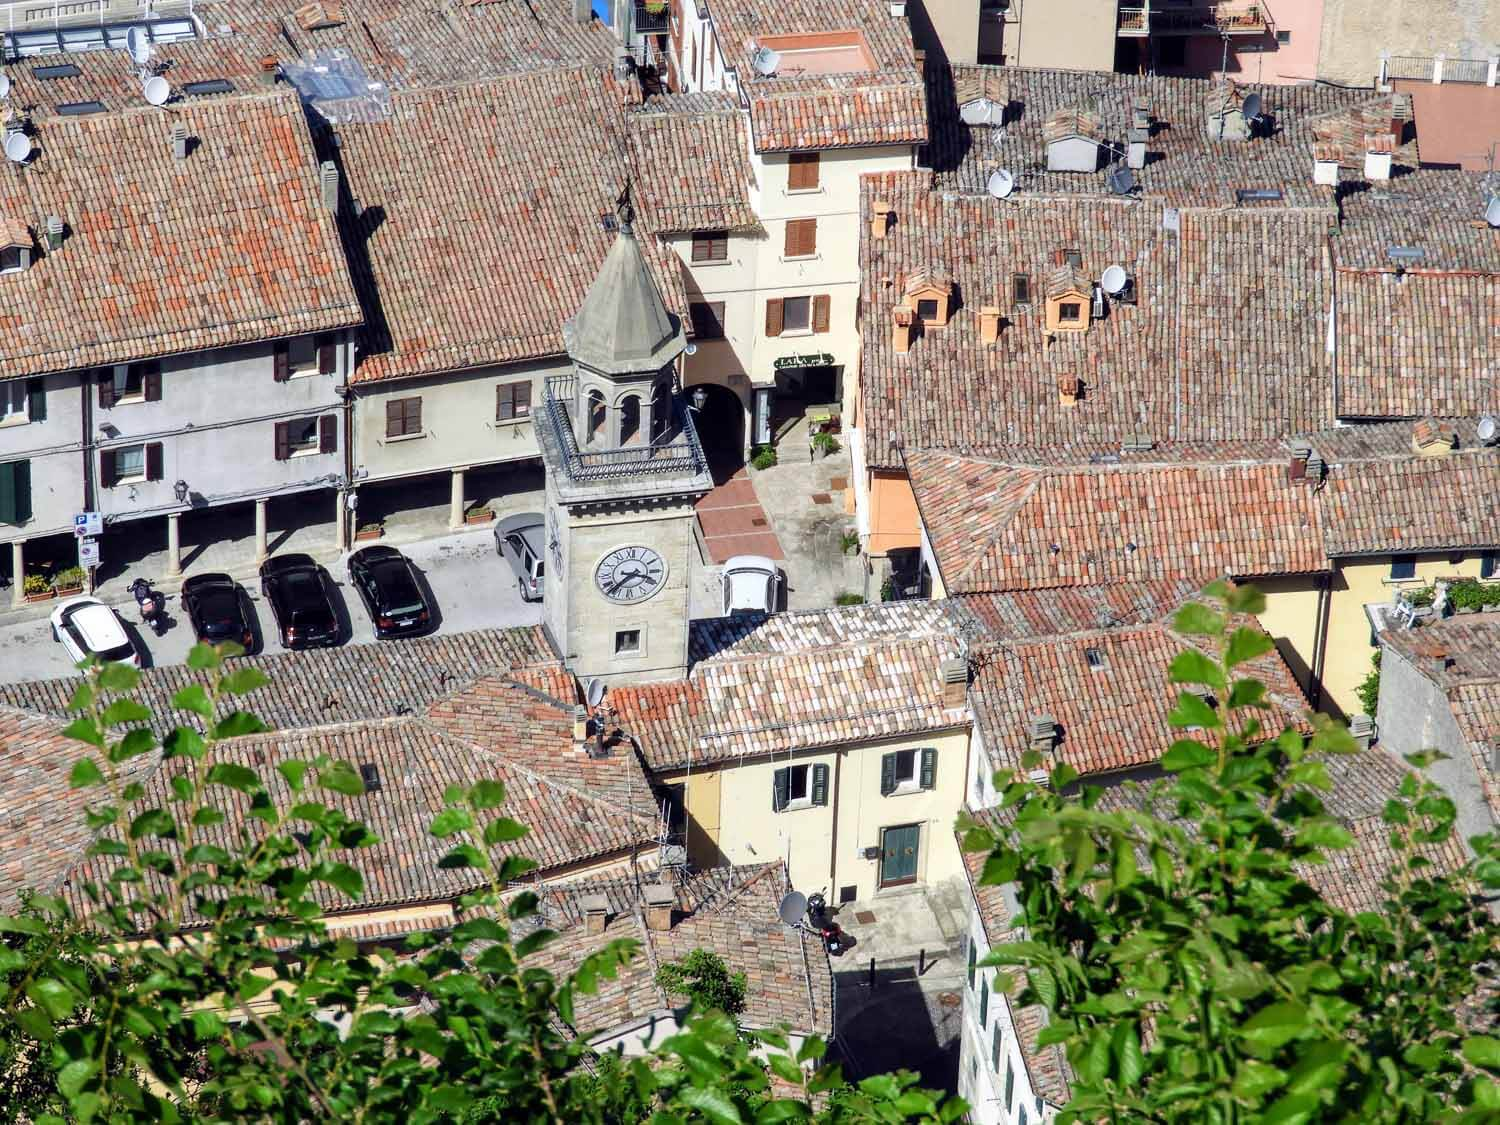 san-marino-micro-nation-rooftops-small-country.jpg